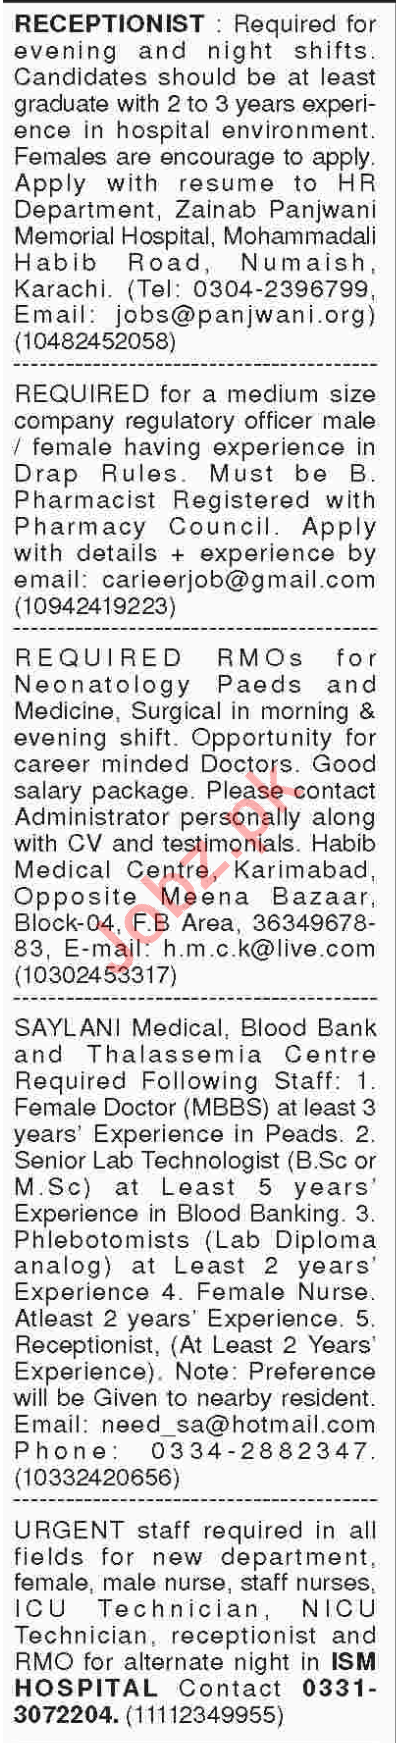 Medical Officers, Doctors, Manager, Consultant Jobs 2018